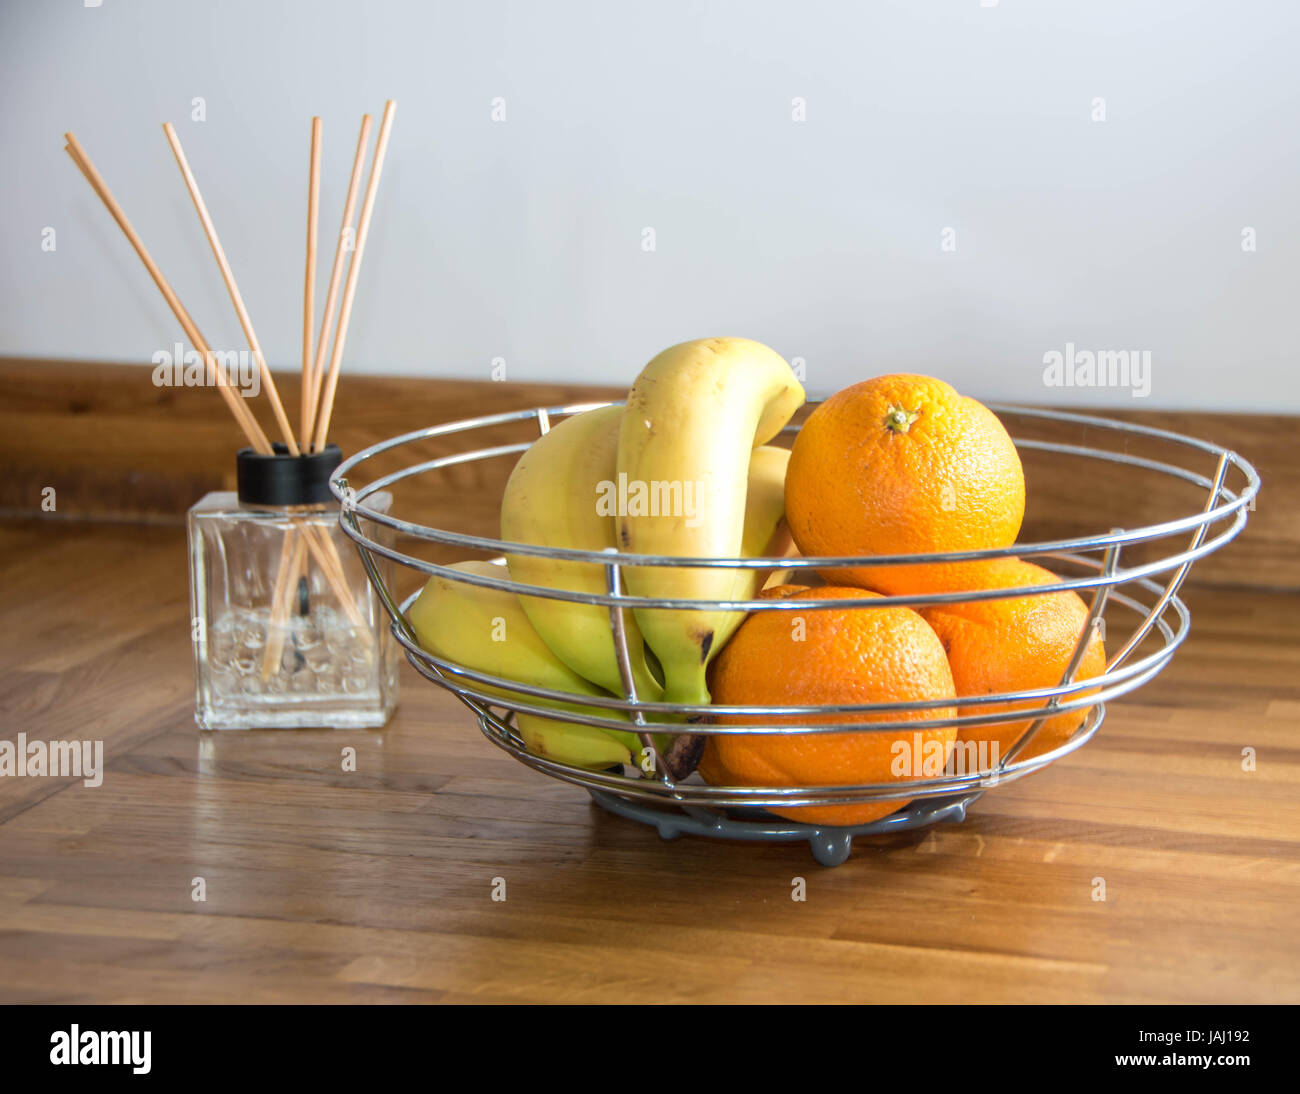 Oranges and bananas - Stock Image